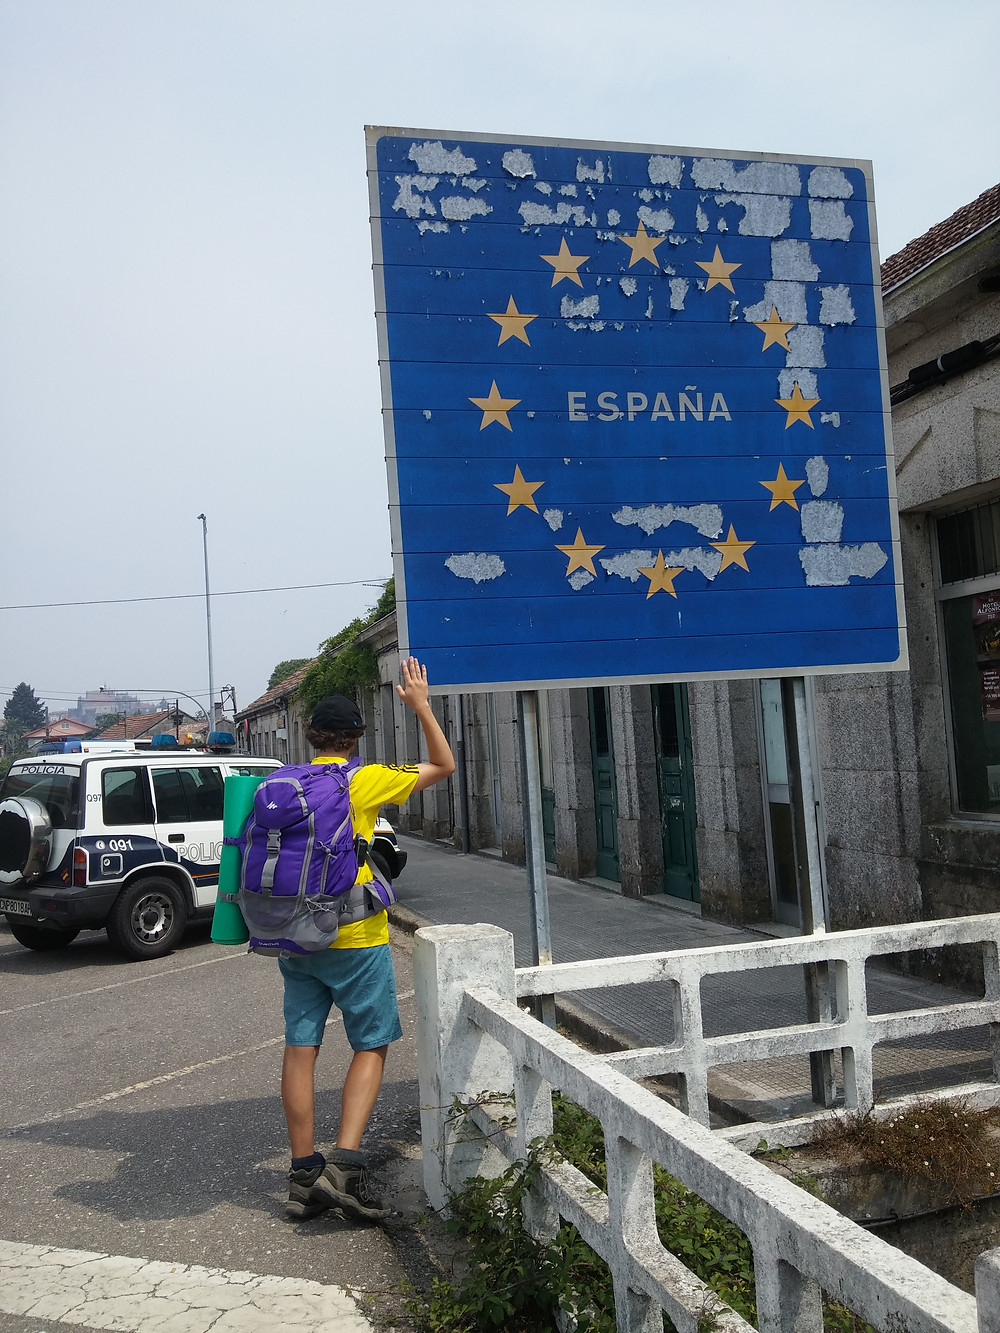 Crossing the border into Spain